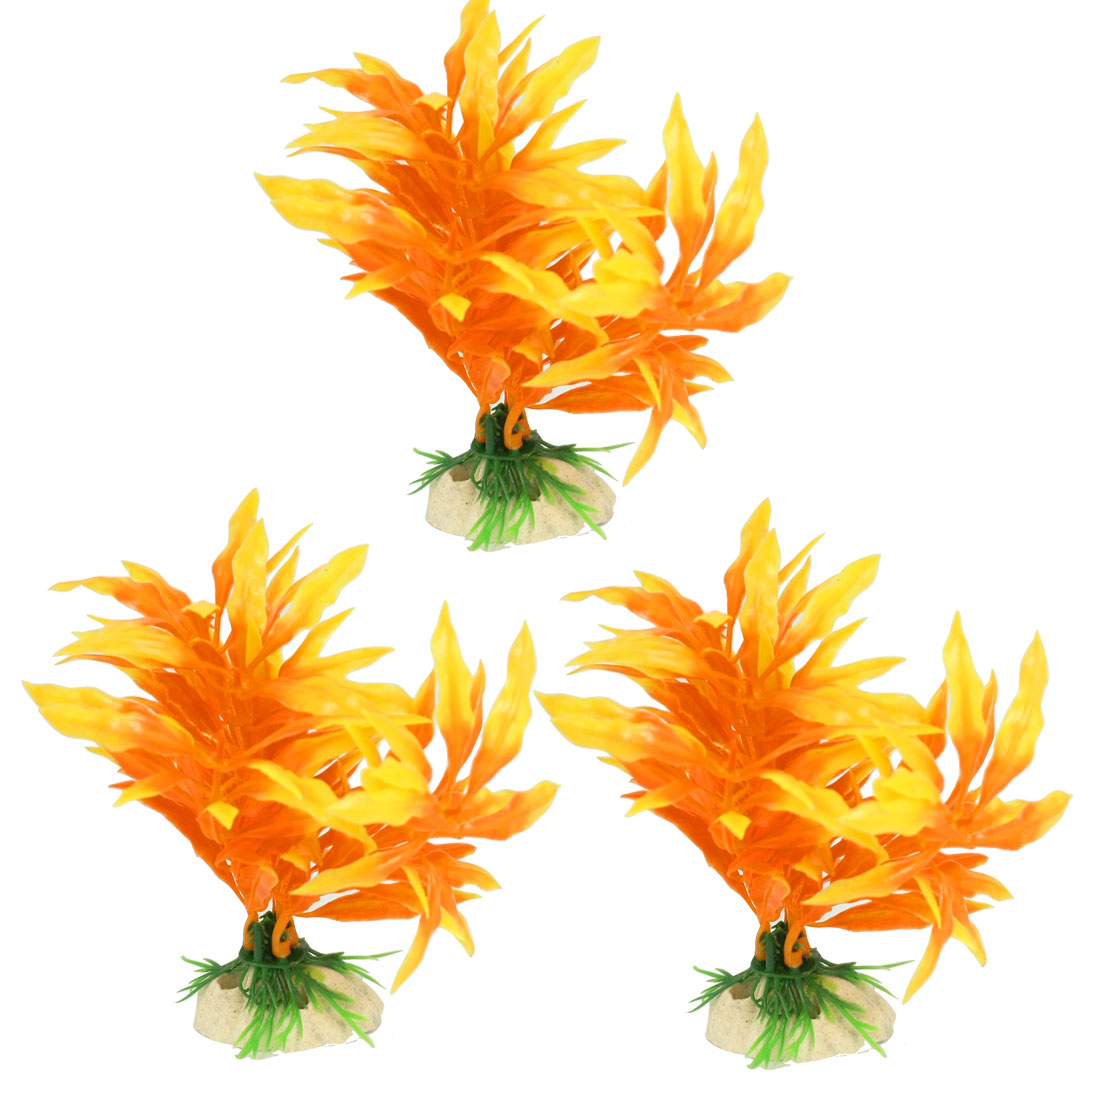 3 Pcs Artificial Ceramic Base Orange Yellow Plastic Plants for Fish Tank